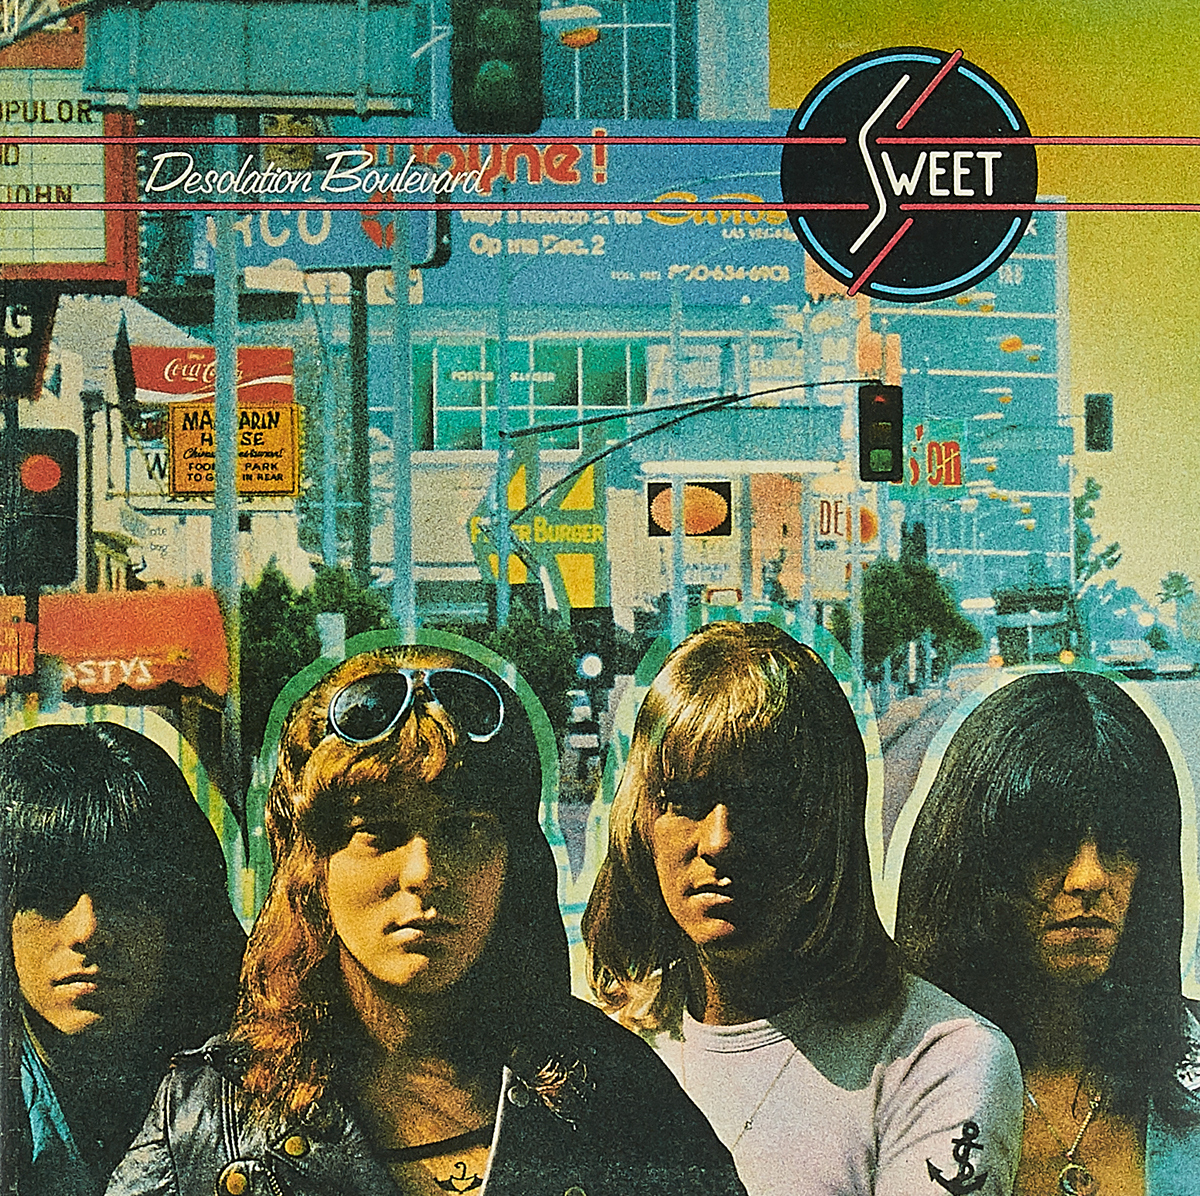 Sweet Sweet. Desolation Boulevard (New Vinyl Edition) (LP) sweet sweet desolation boulevard new vinyl edition lp